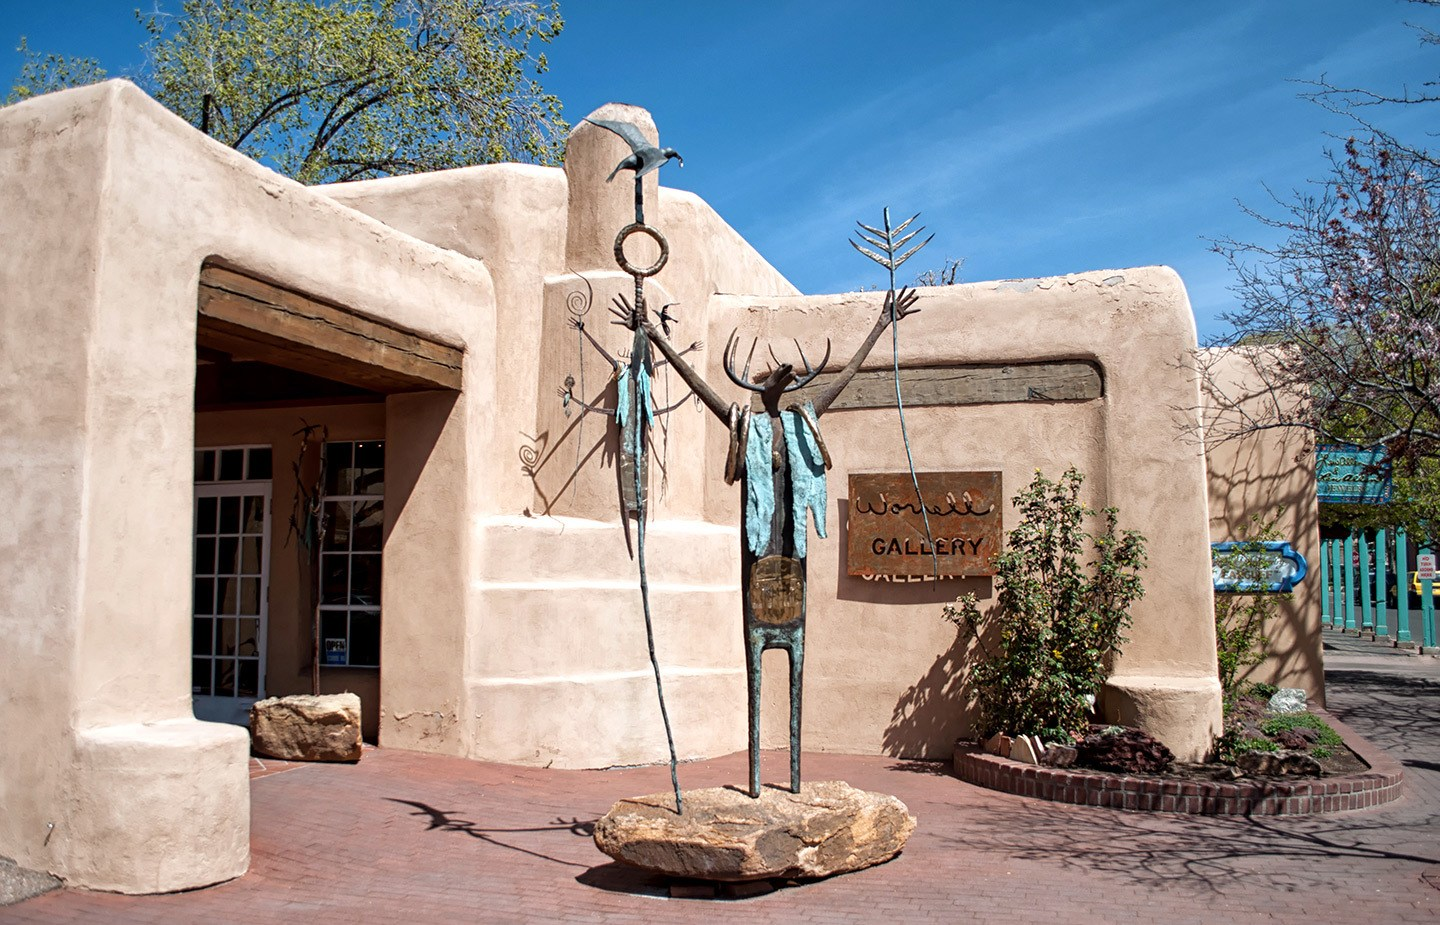 Art gallery in Santa Fe, New Mexico